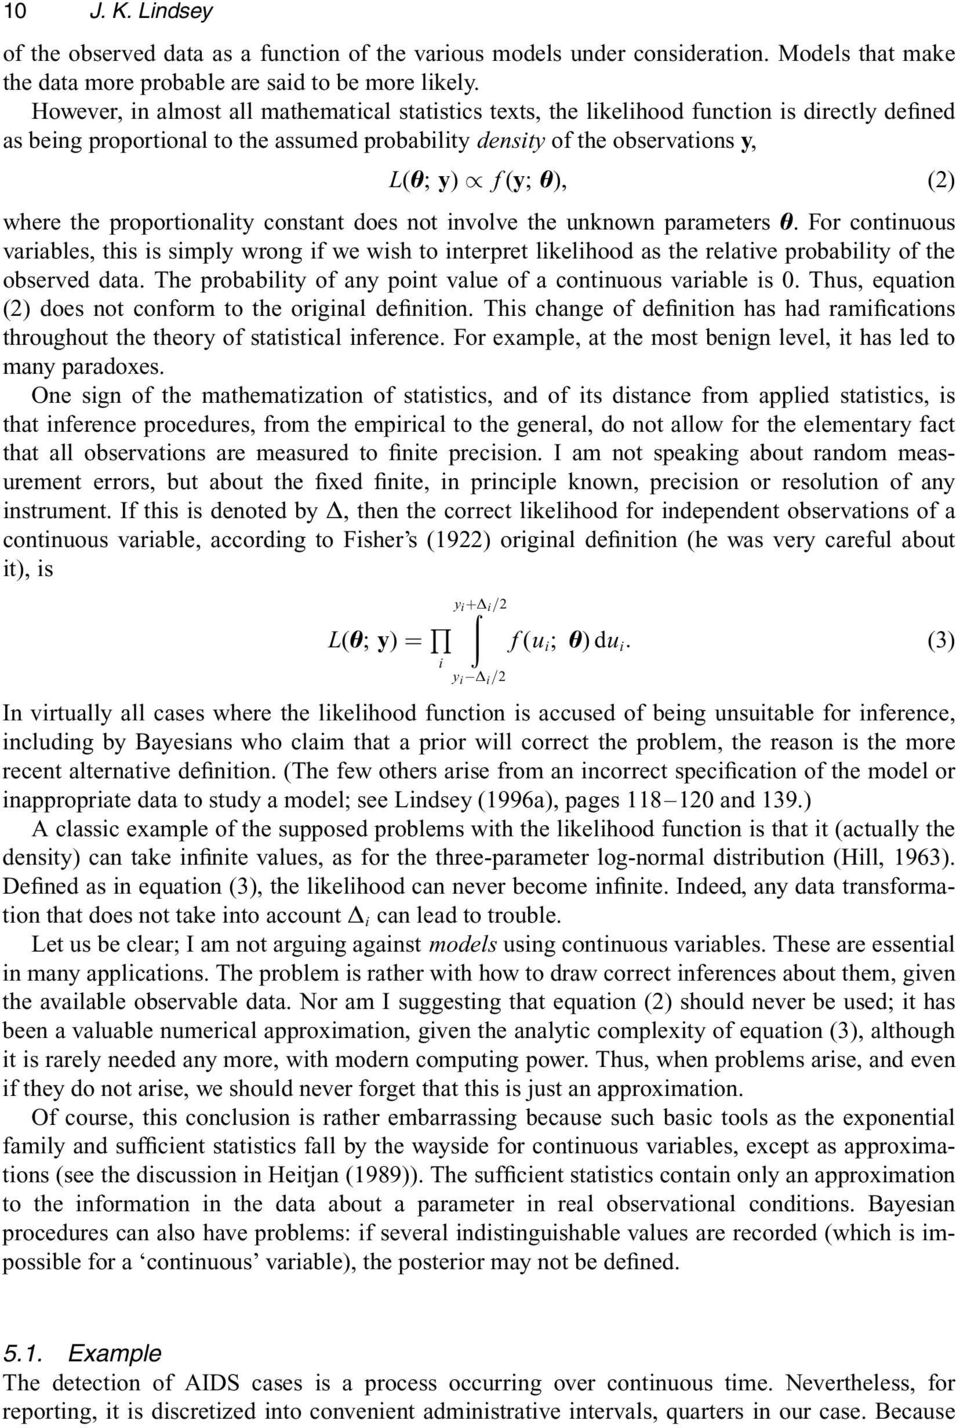 (2) where the proportionality constant does not involve the unknown parameters è.